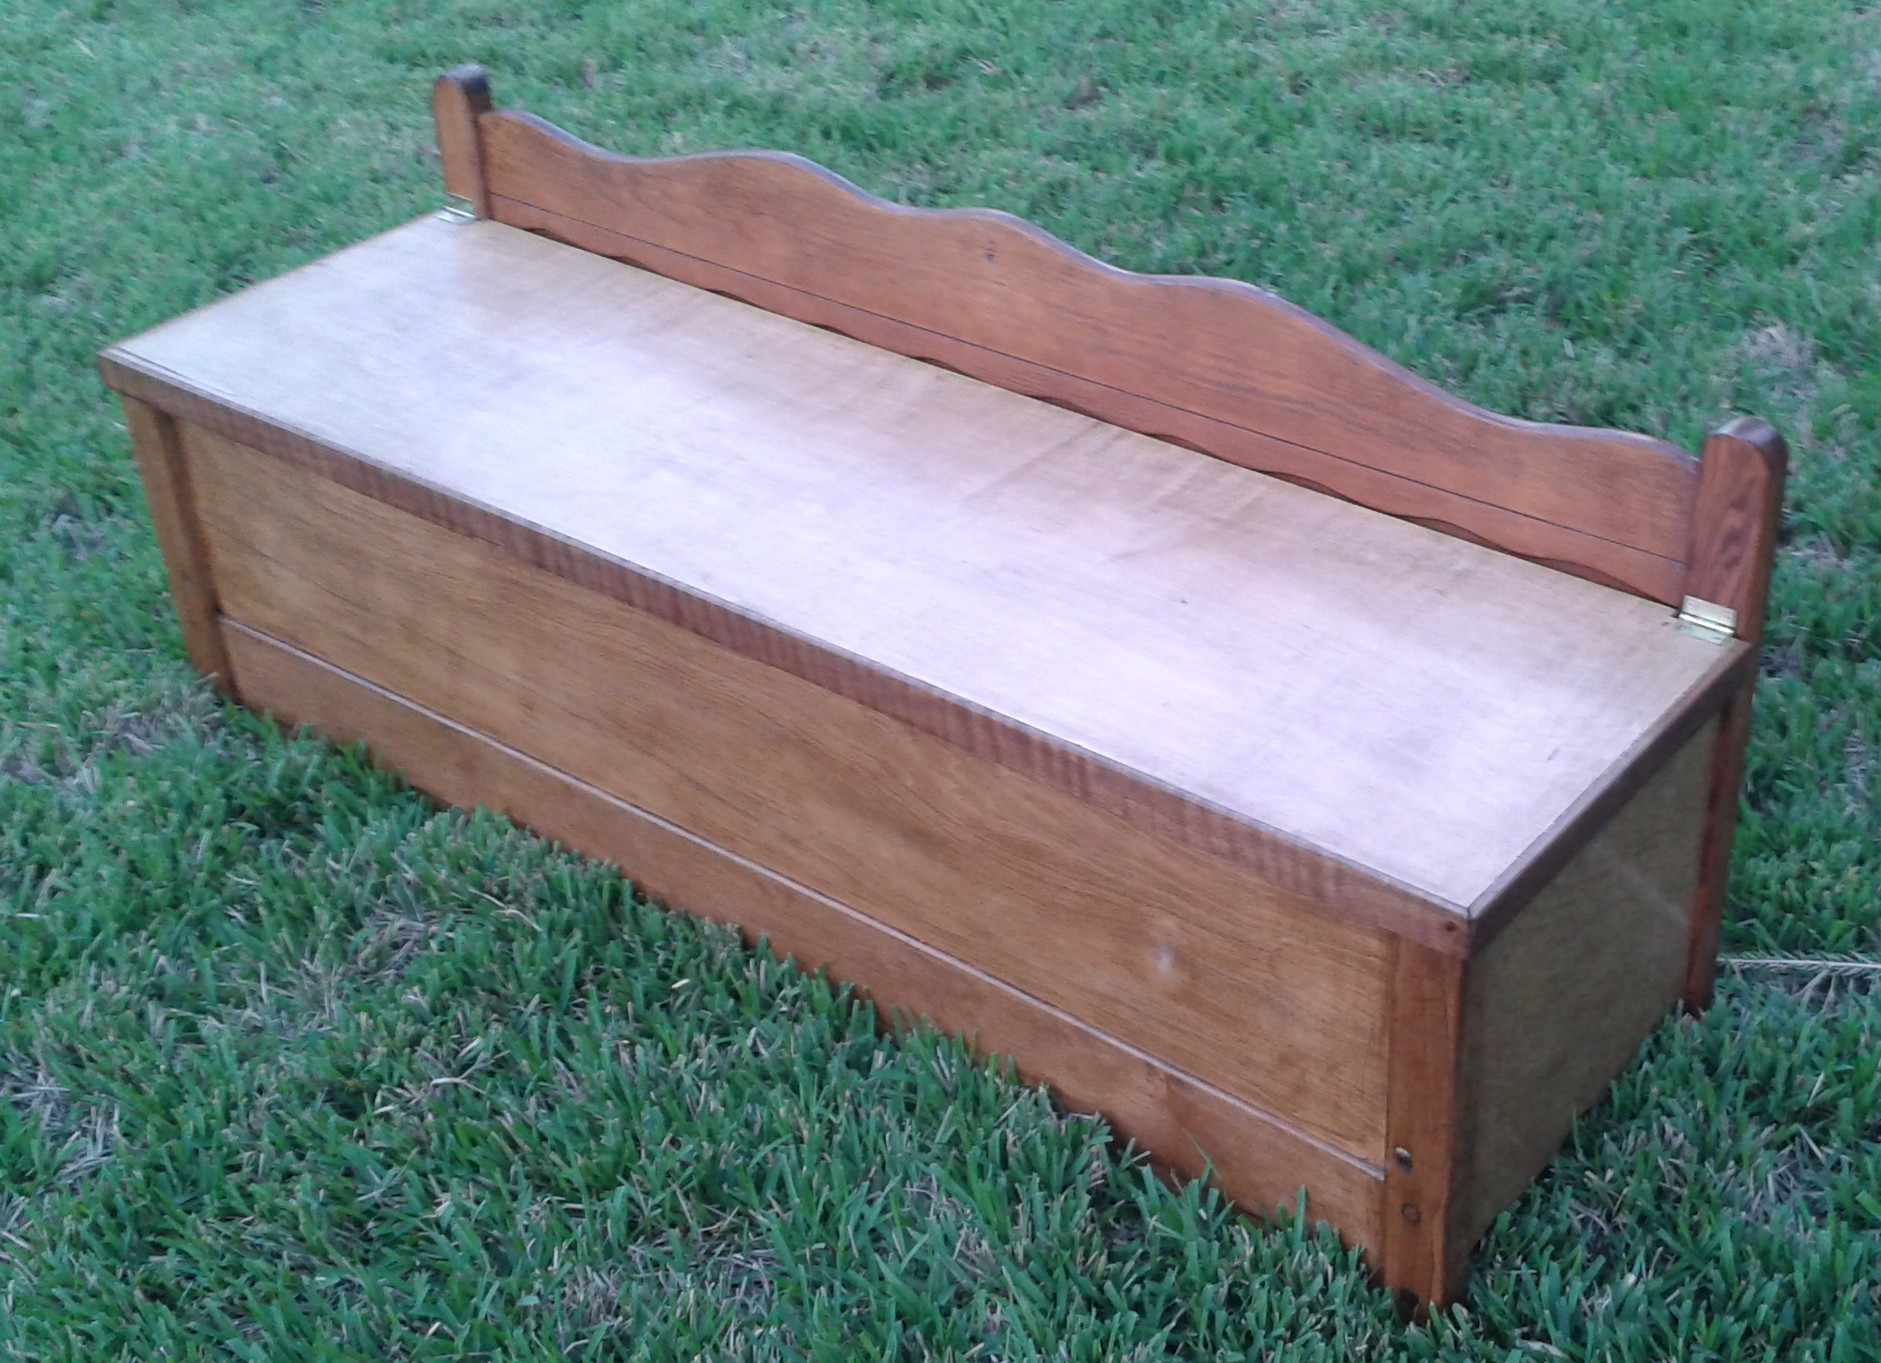 This Week In the Shop: Dining Bench Made from Upcycled Bed Frame